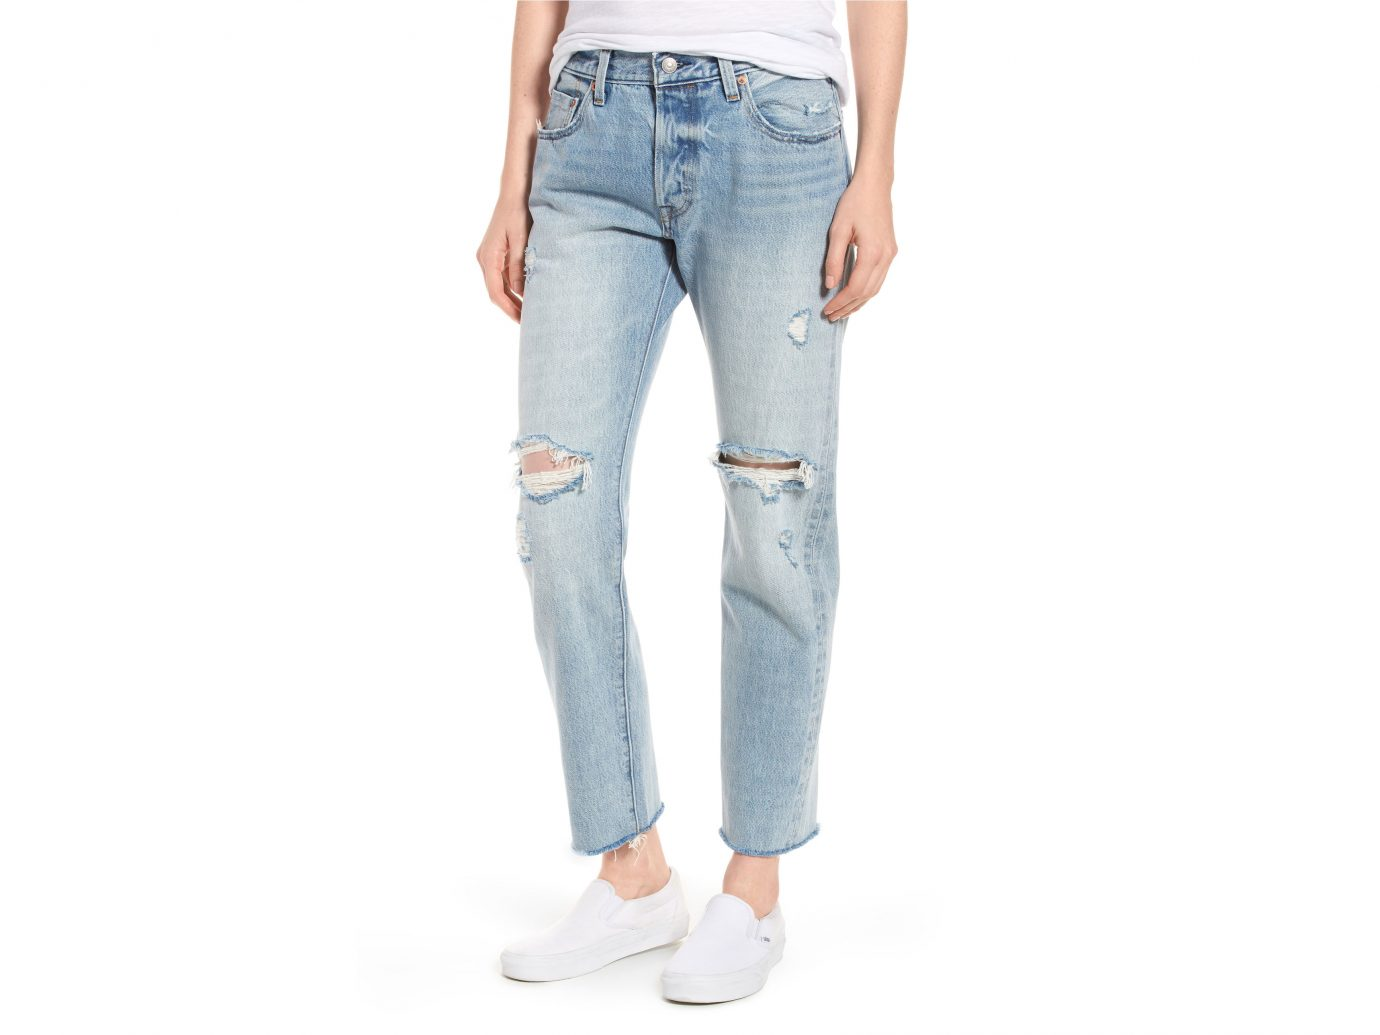 Levi's Ripped High Waist Crop Jeans